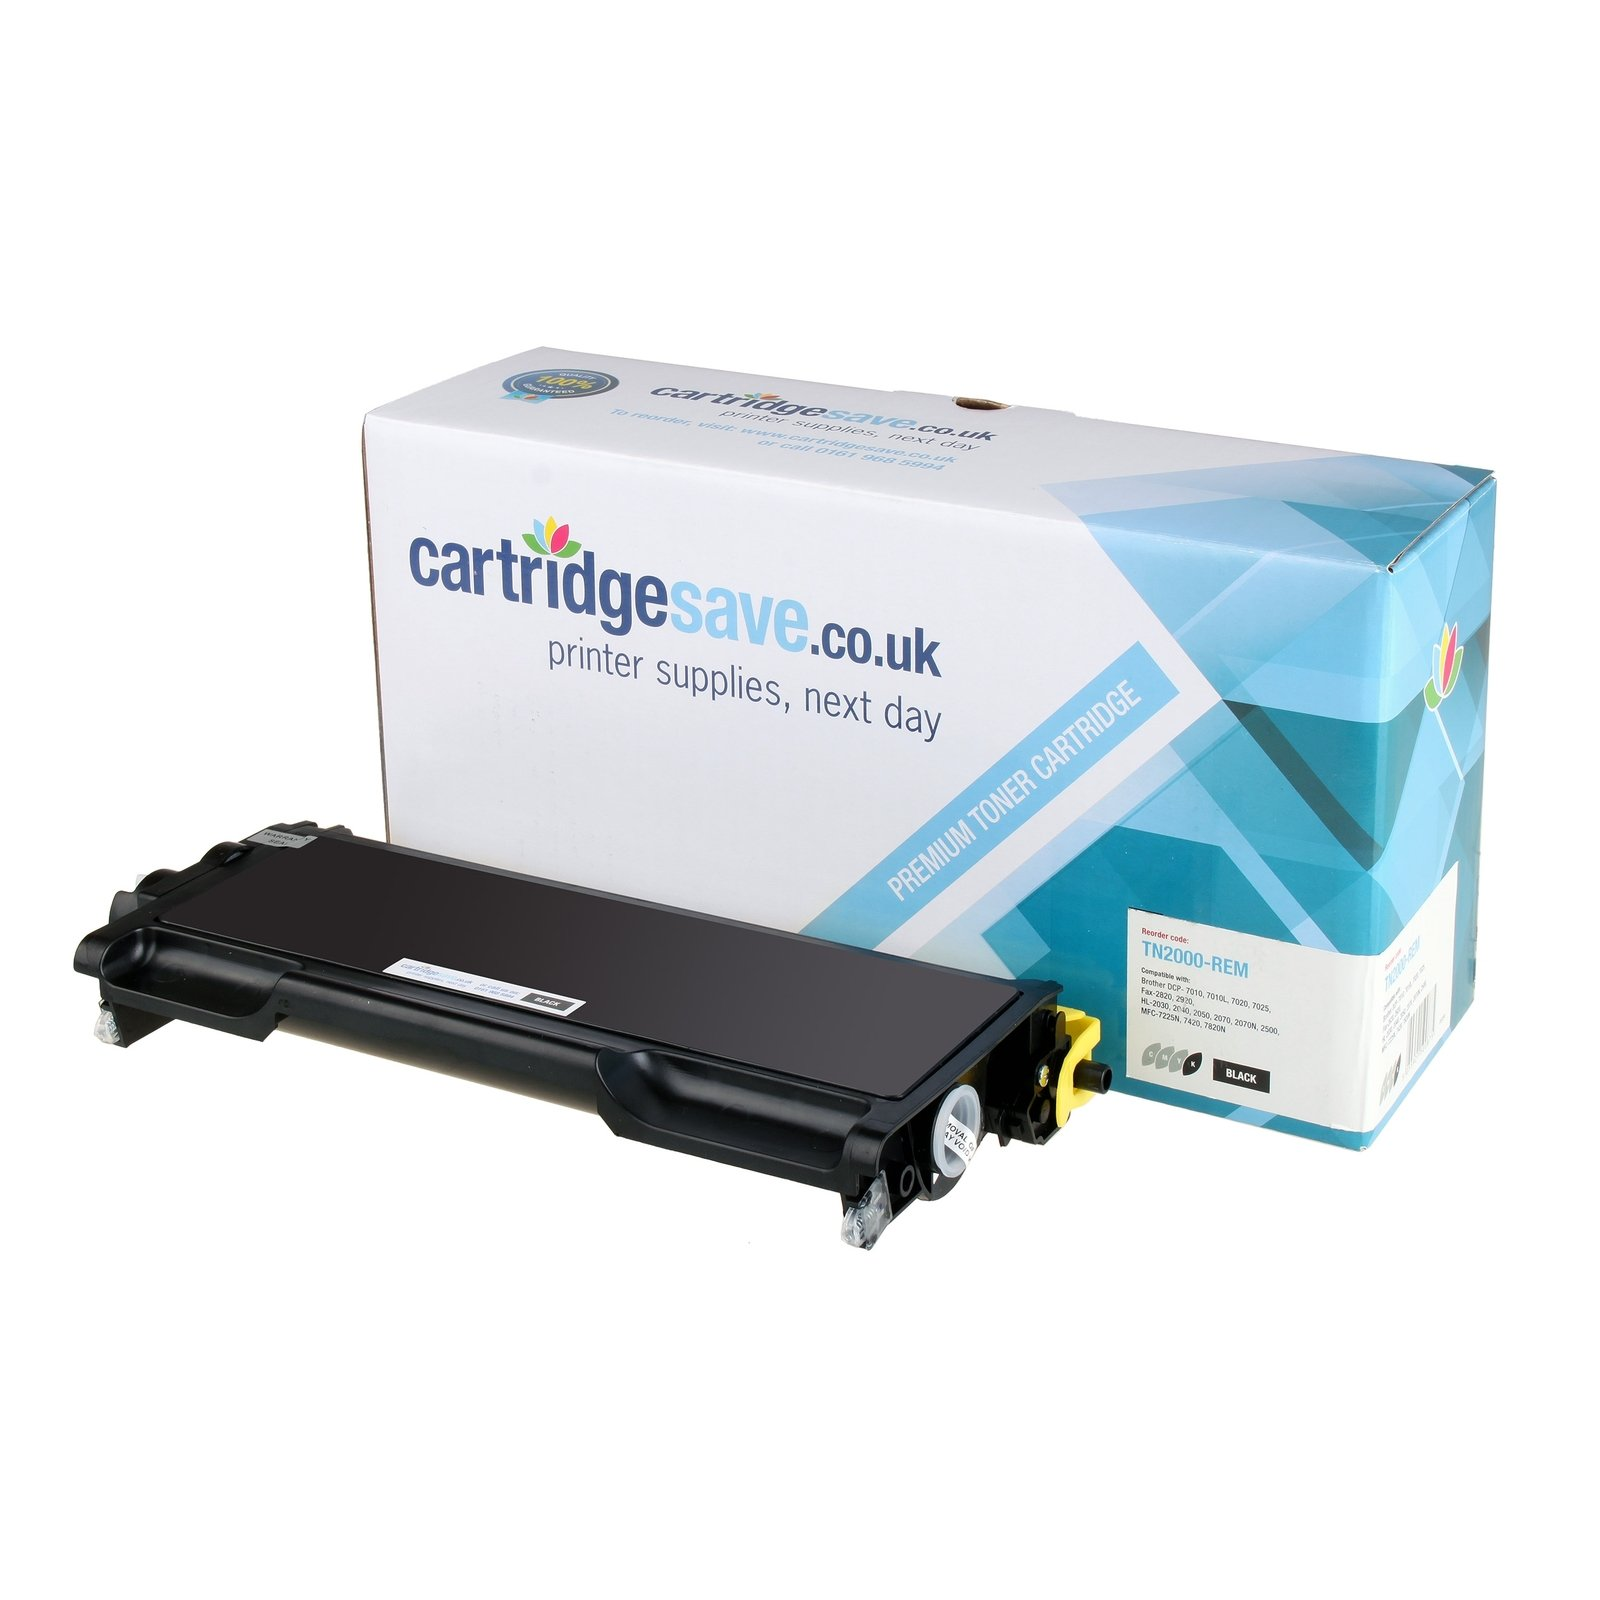 Compatible Brother TN-2000 Toner Cartridge Black (Replaces TN2000 Laser Printer Cartridge)